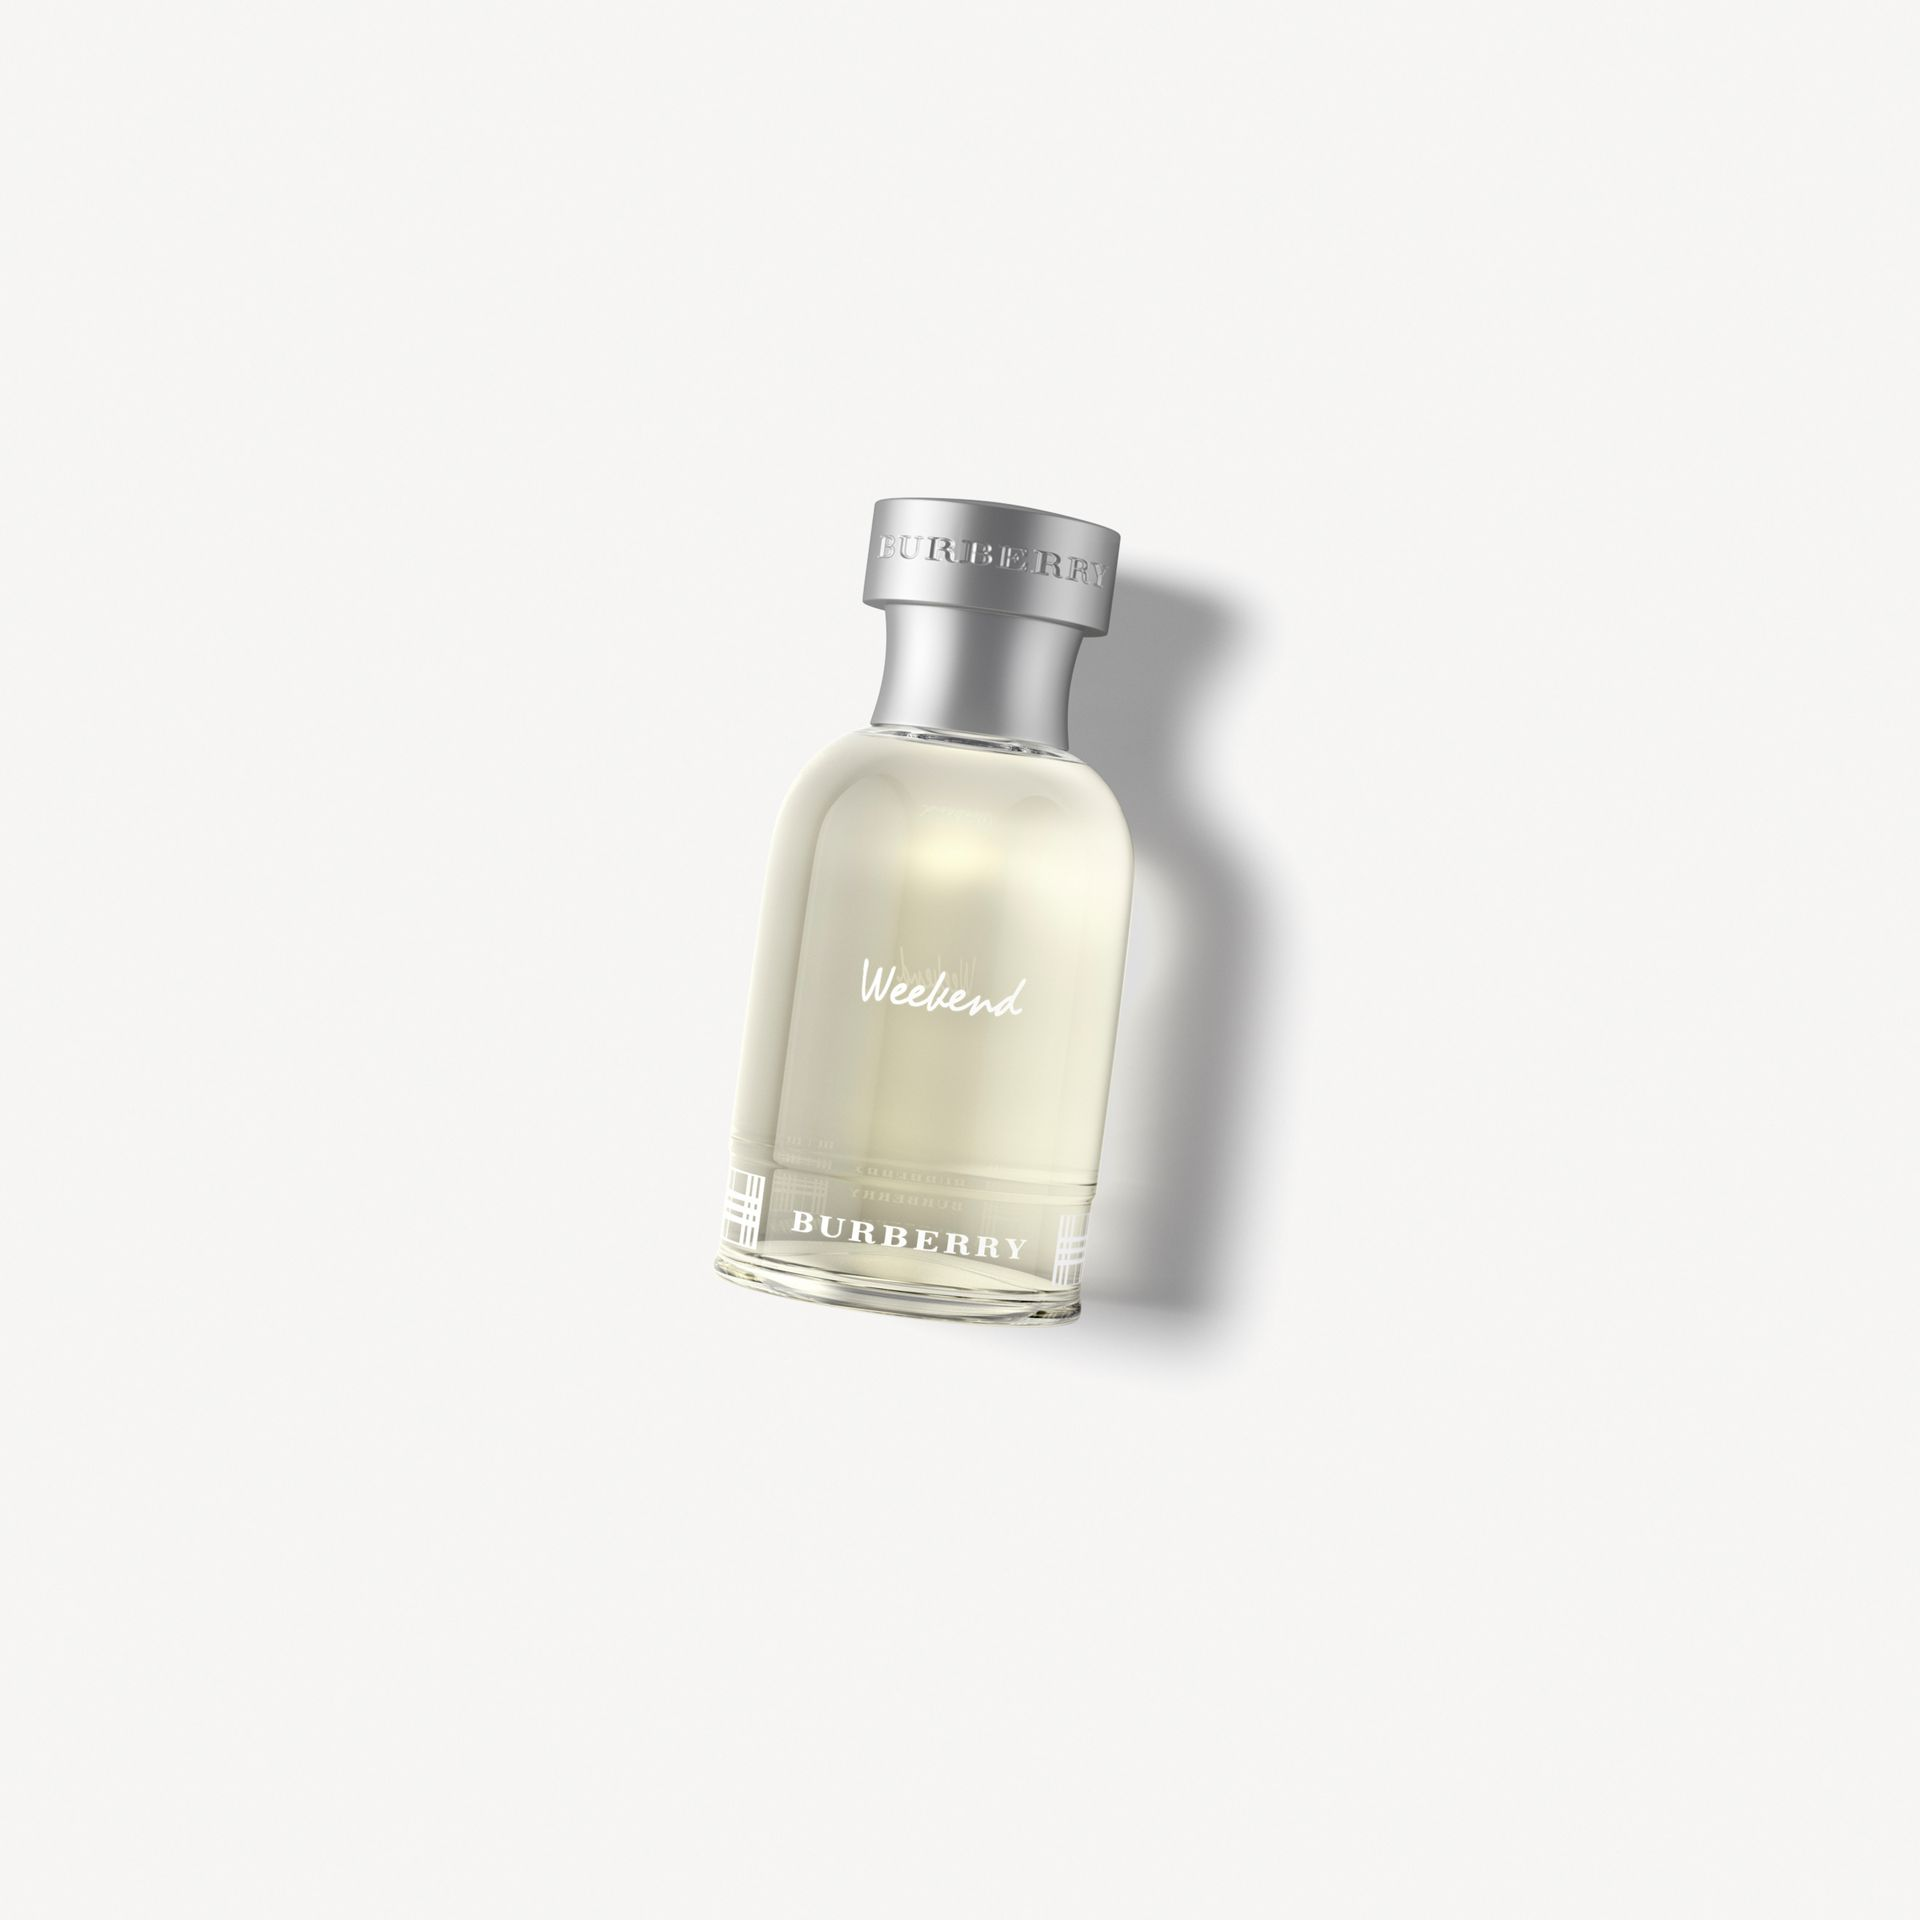 Burberry Weekend Eau de Toilette 50 ml - Uomo | Burberry - immagine della galleria 0